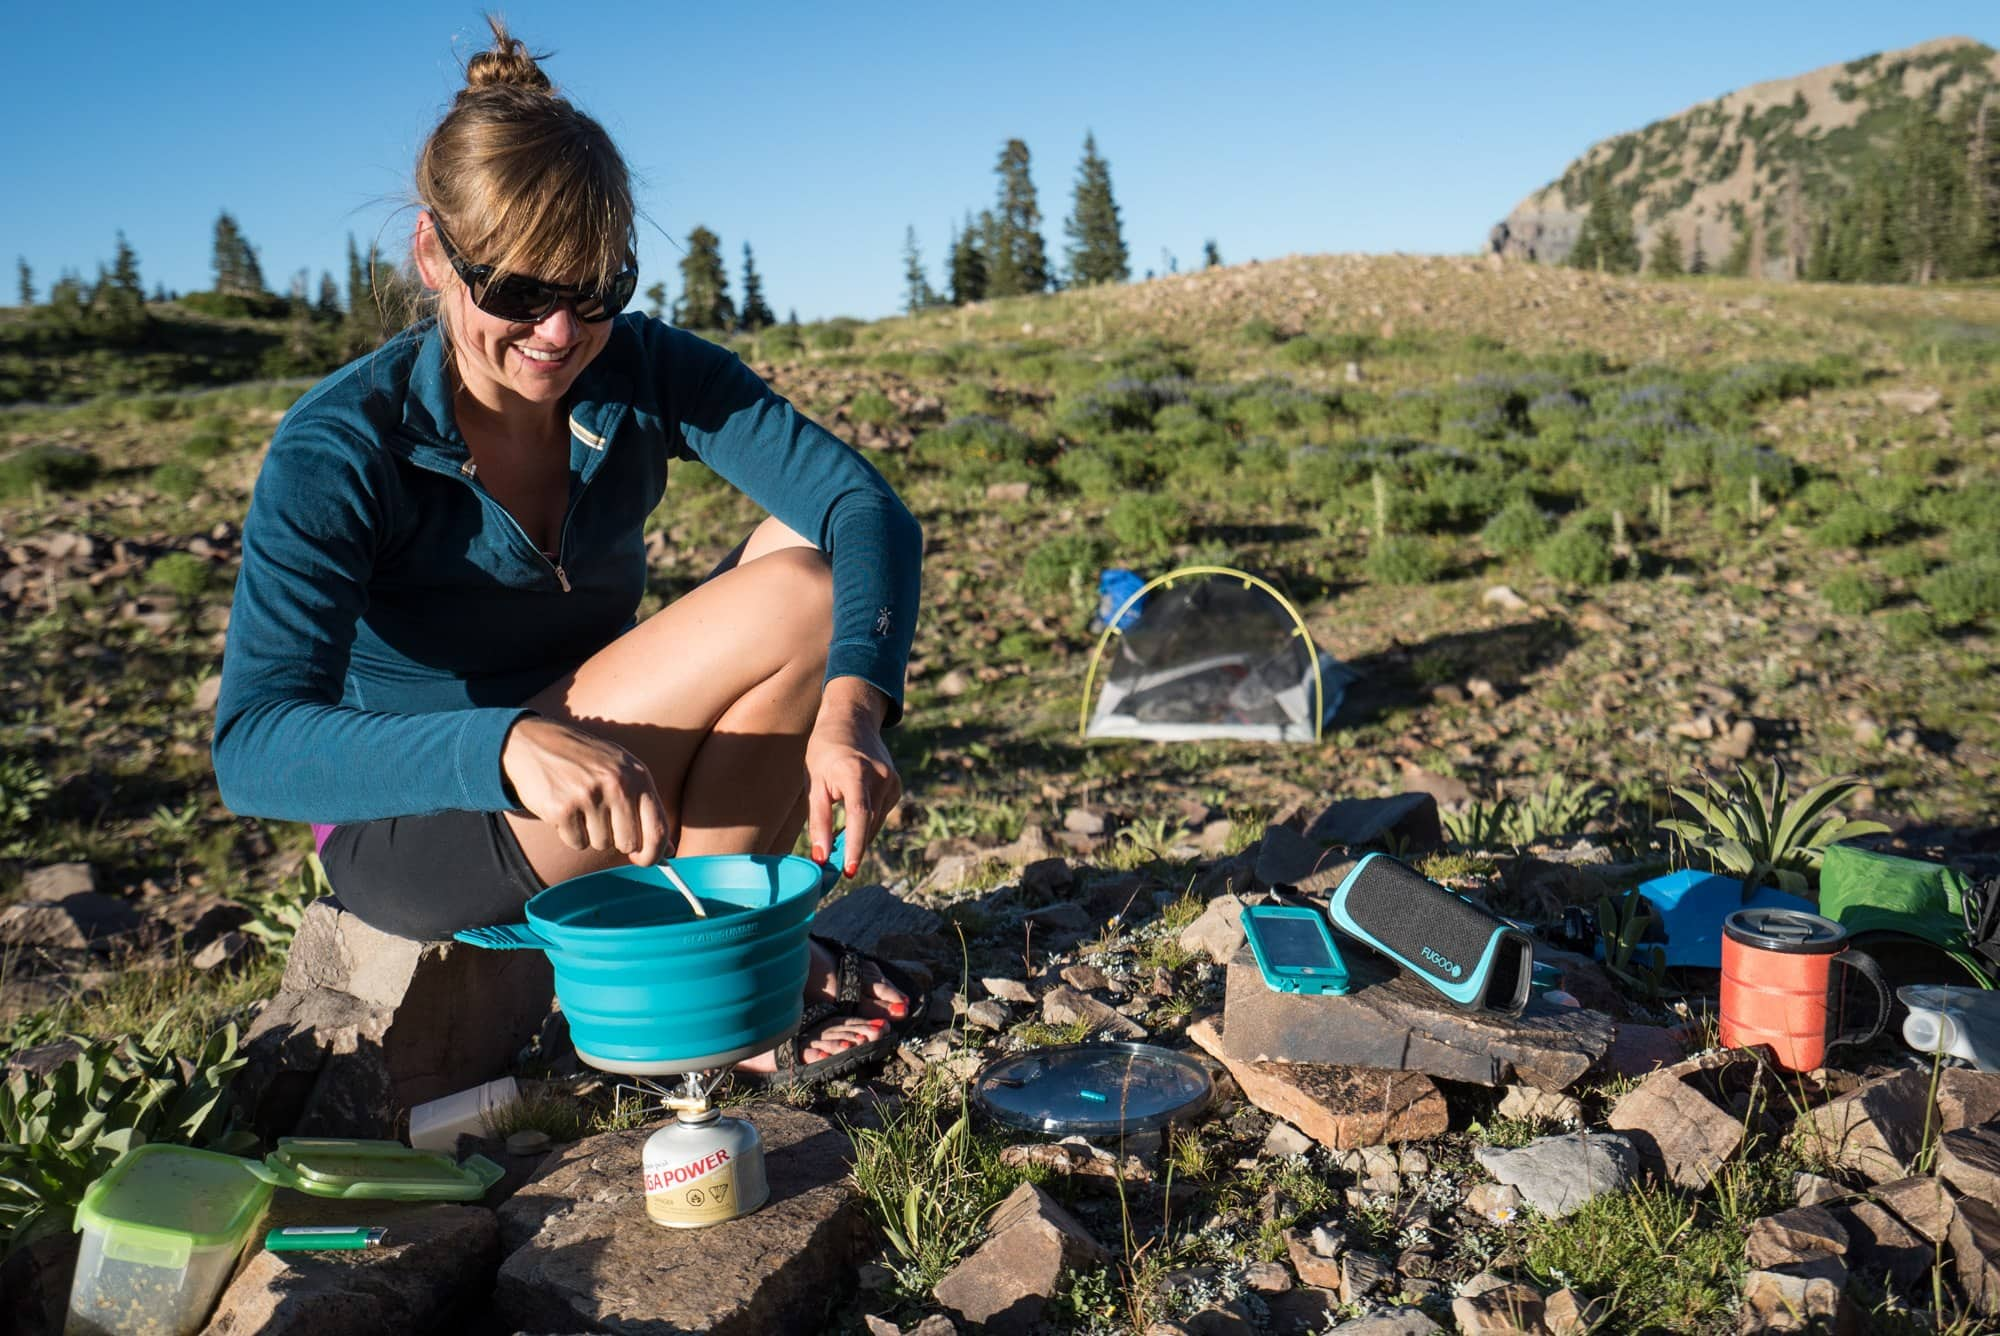 Backpacking on a budget? Here is my favorite cheap backpacking gear, including the best inexpensive stoves for your backcountry adventures.